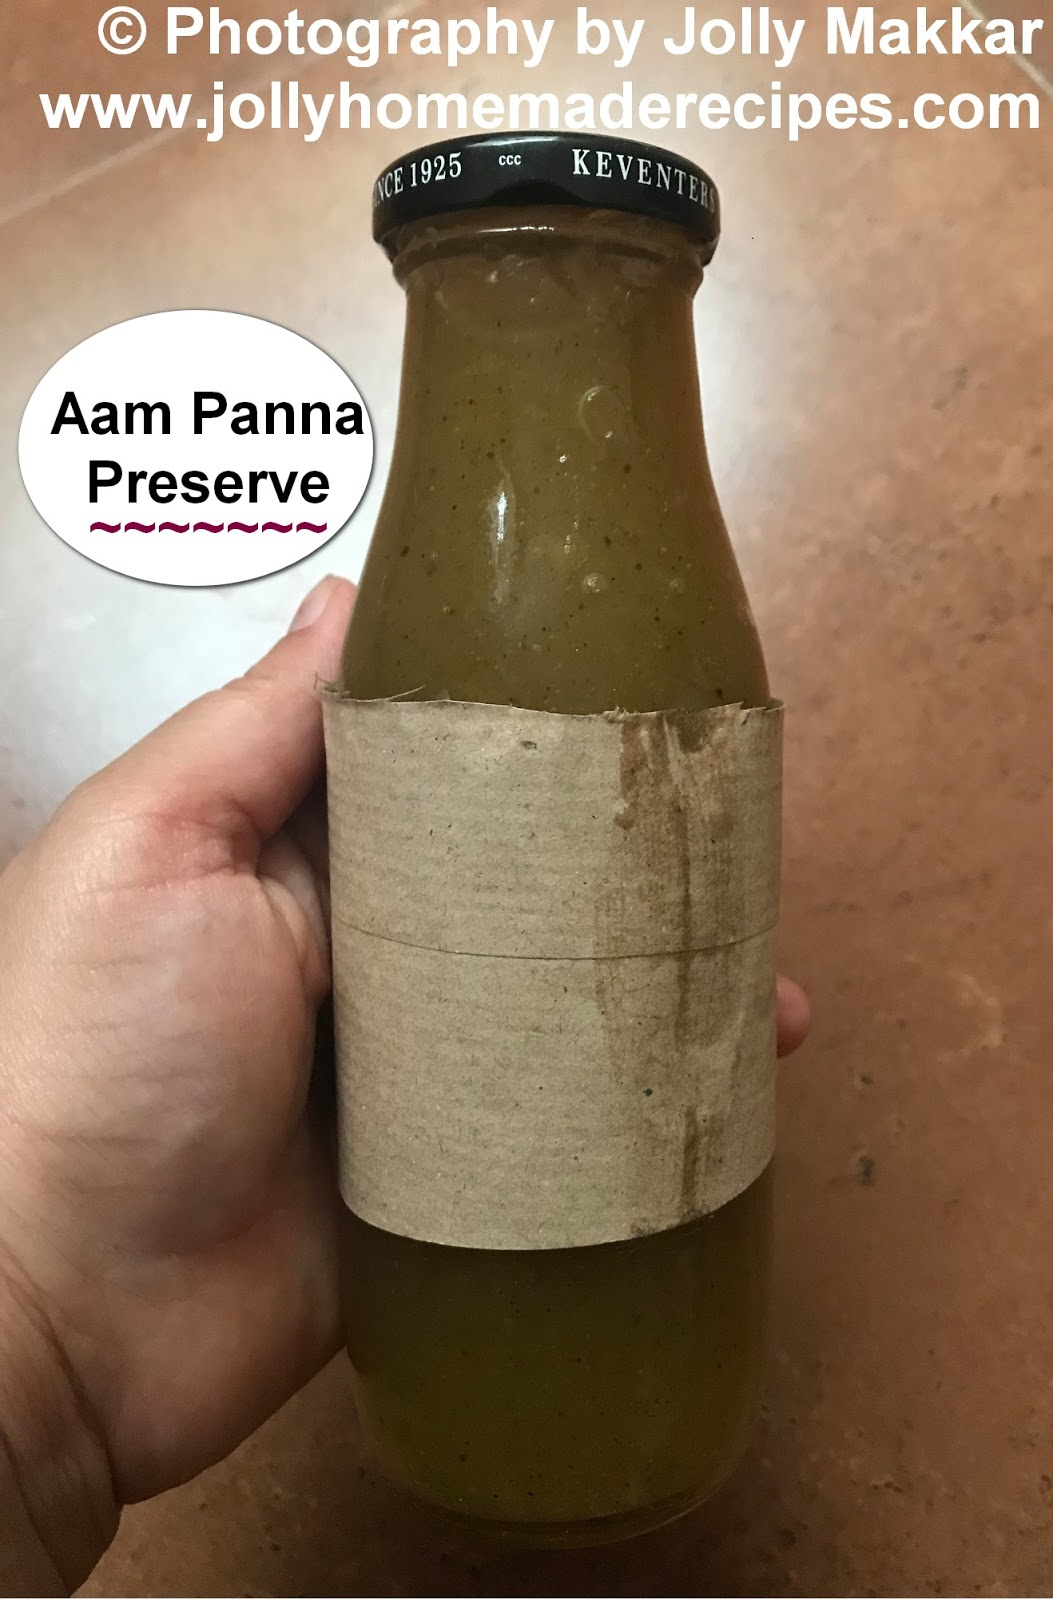 aam panna concentrate